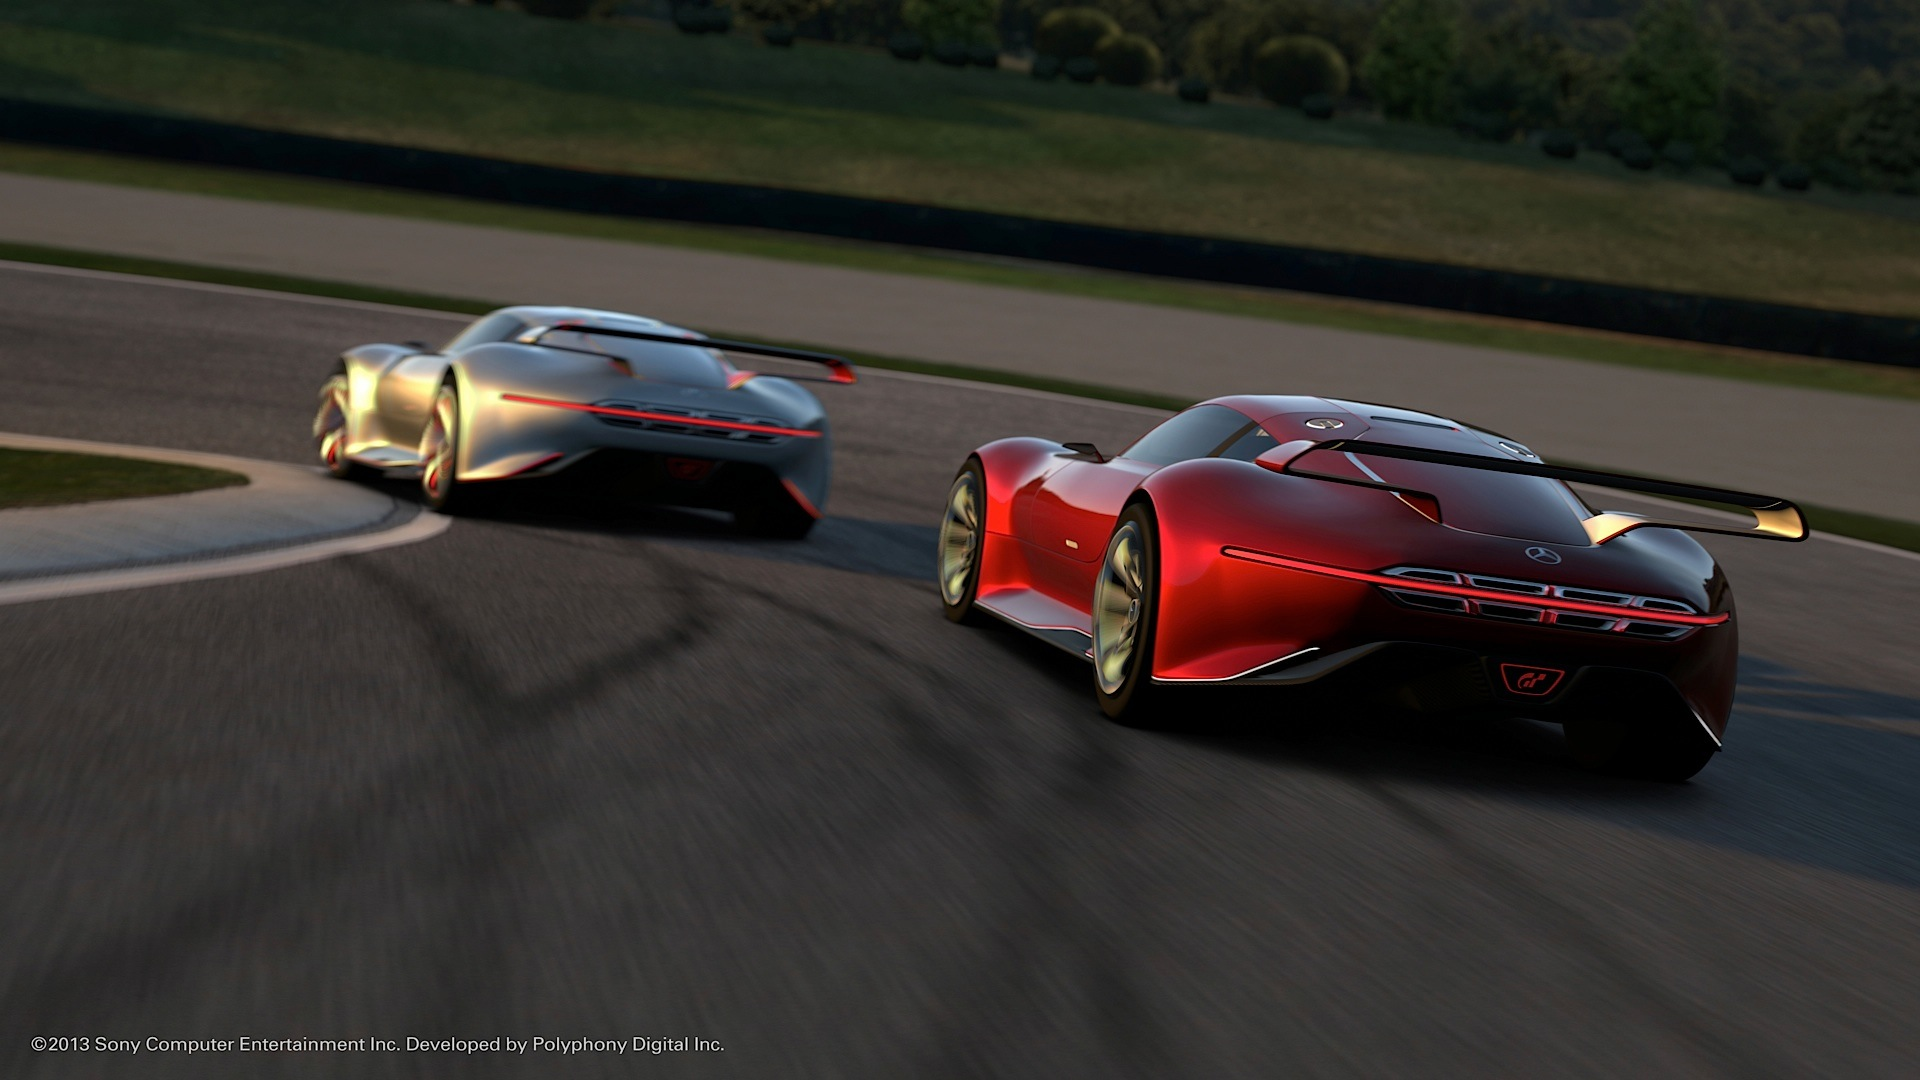 2013 - [Mercedes-Benz] AMG Vision Gran Turismo - Page 2 It-sure-is-tight-in-the-amg-vision-gran-turismo-photo-gallery-1080p-13